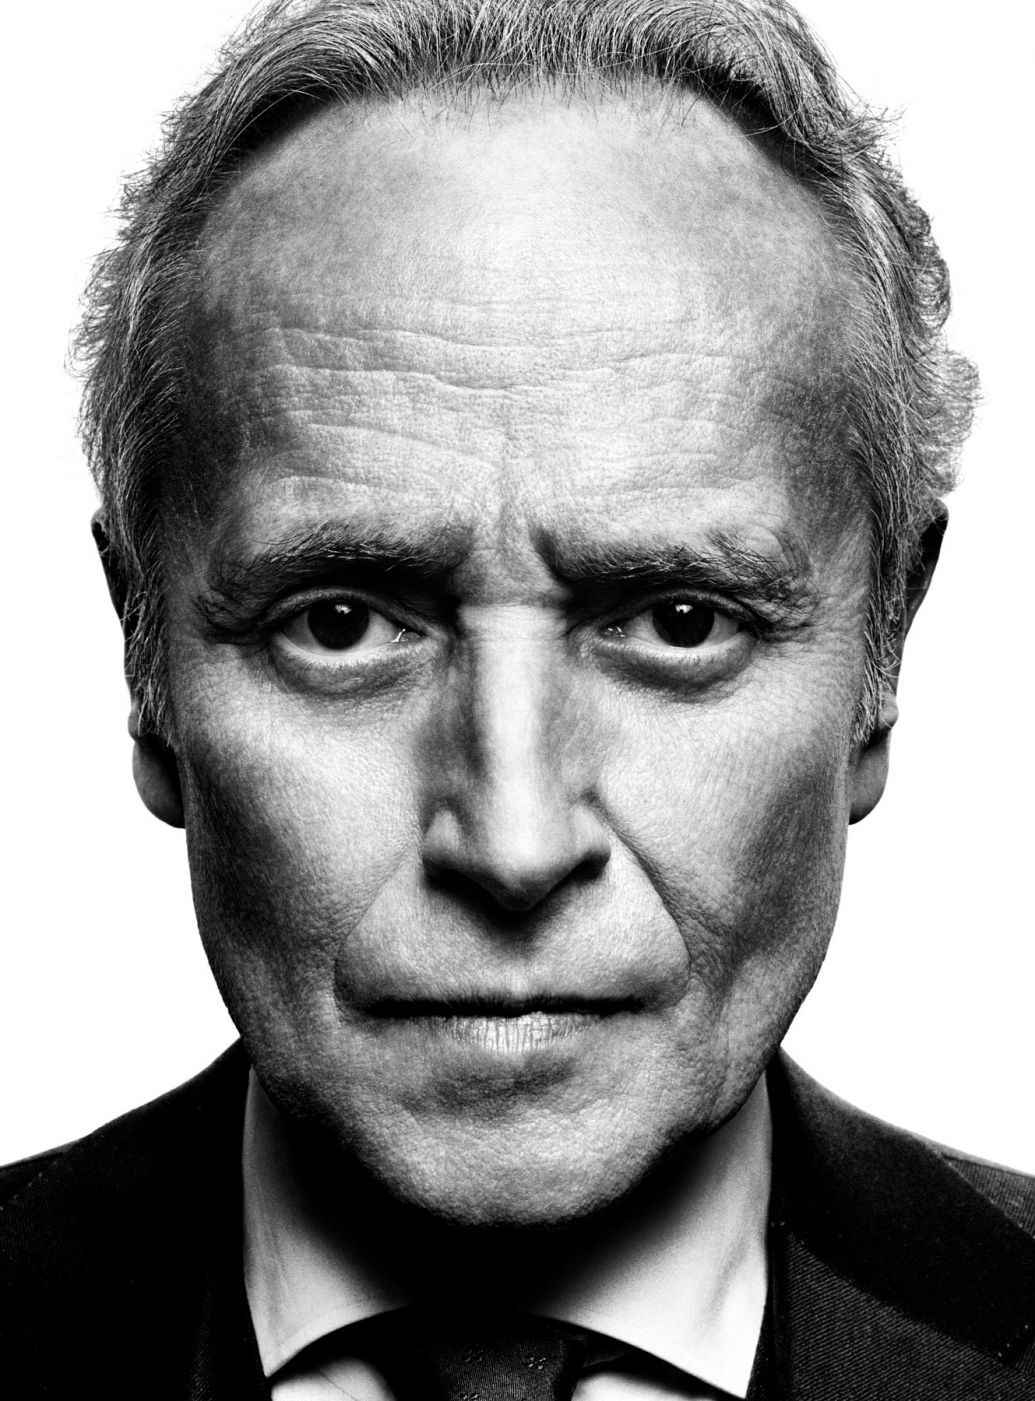 Men celebrities · black and white man · photography portraits · platon